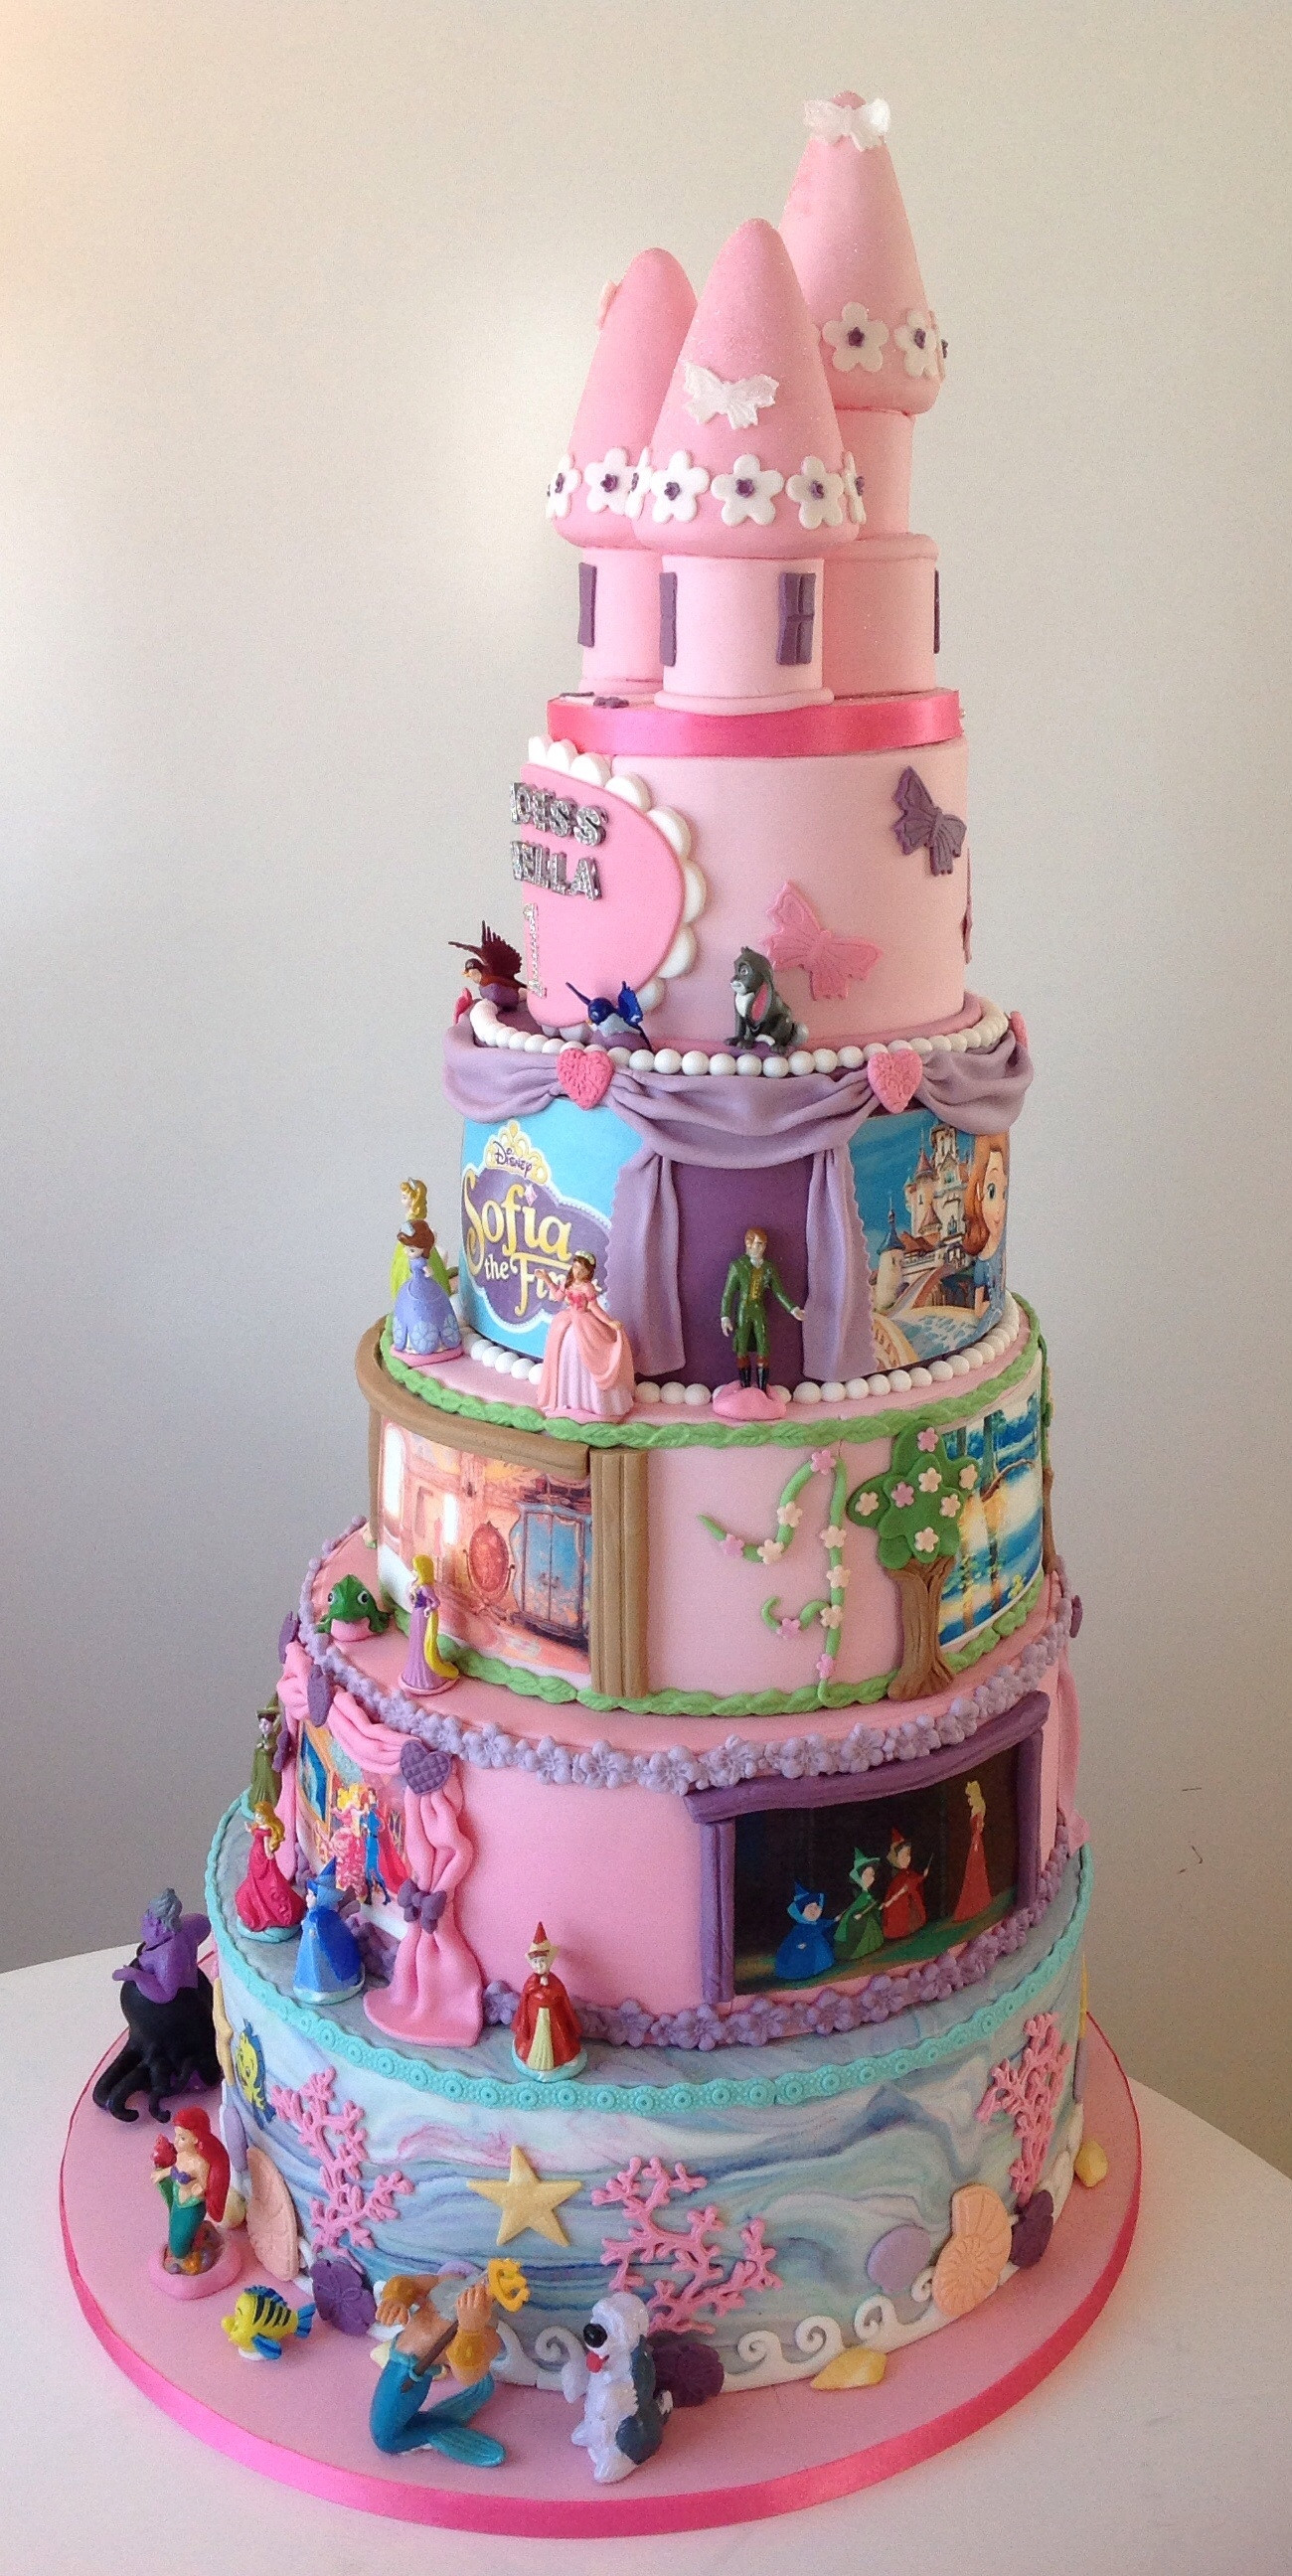 Best ideas about Disney Birthday Cake . Save or Pin Disney Princess 1St Birthday Cake CakeCentral Now.